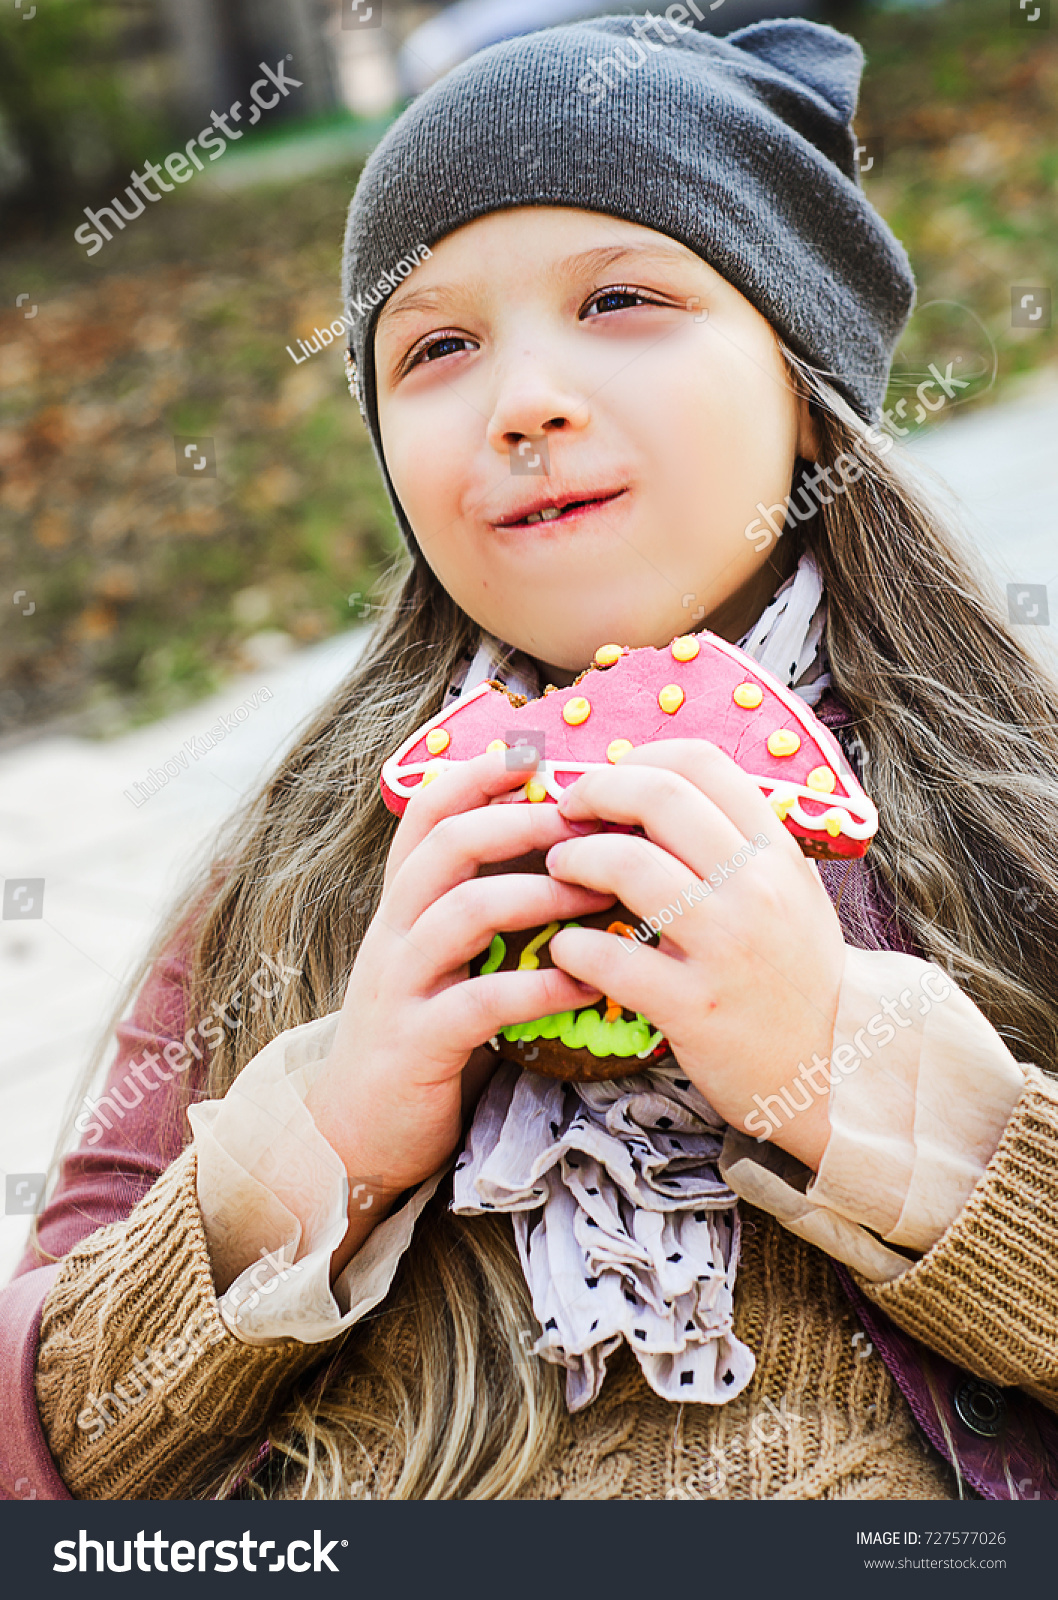 9563faa87bd Beautiful little smiling girl with long hair in knit hat with cats ears  eating honey cake